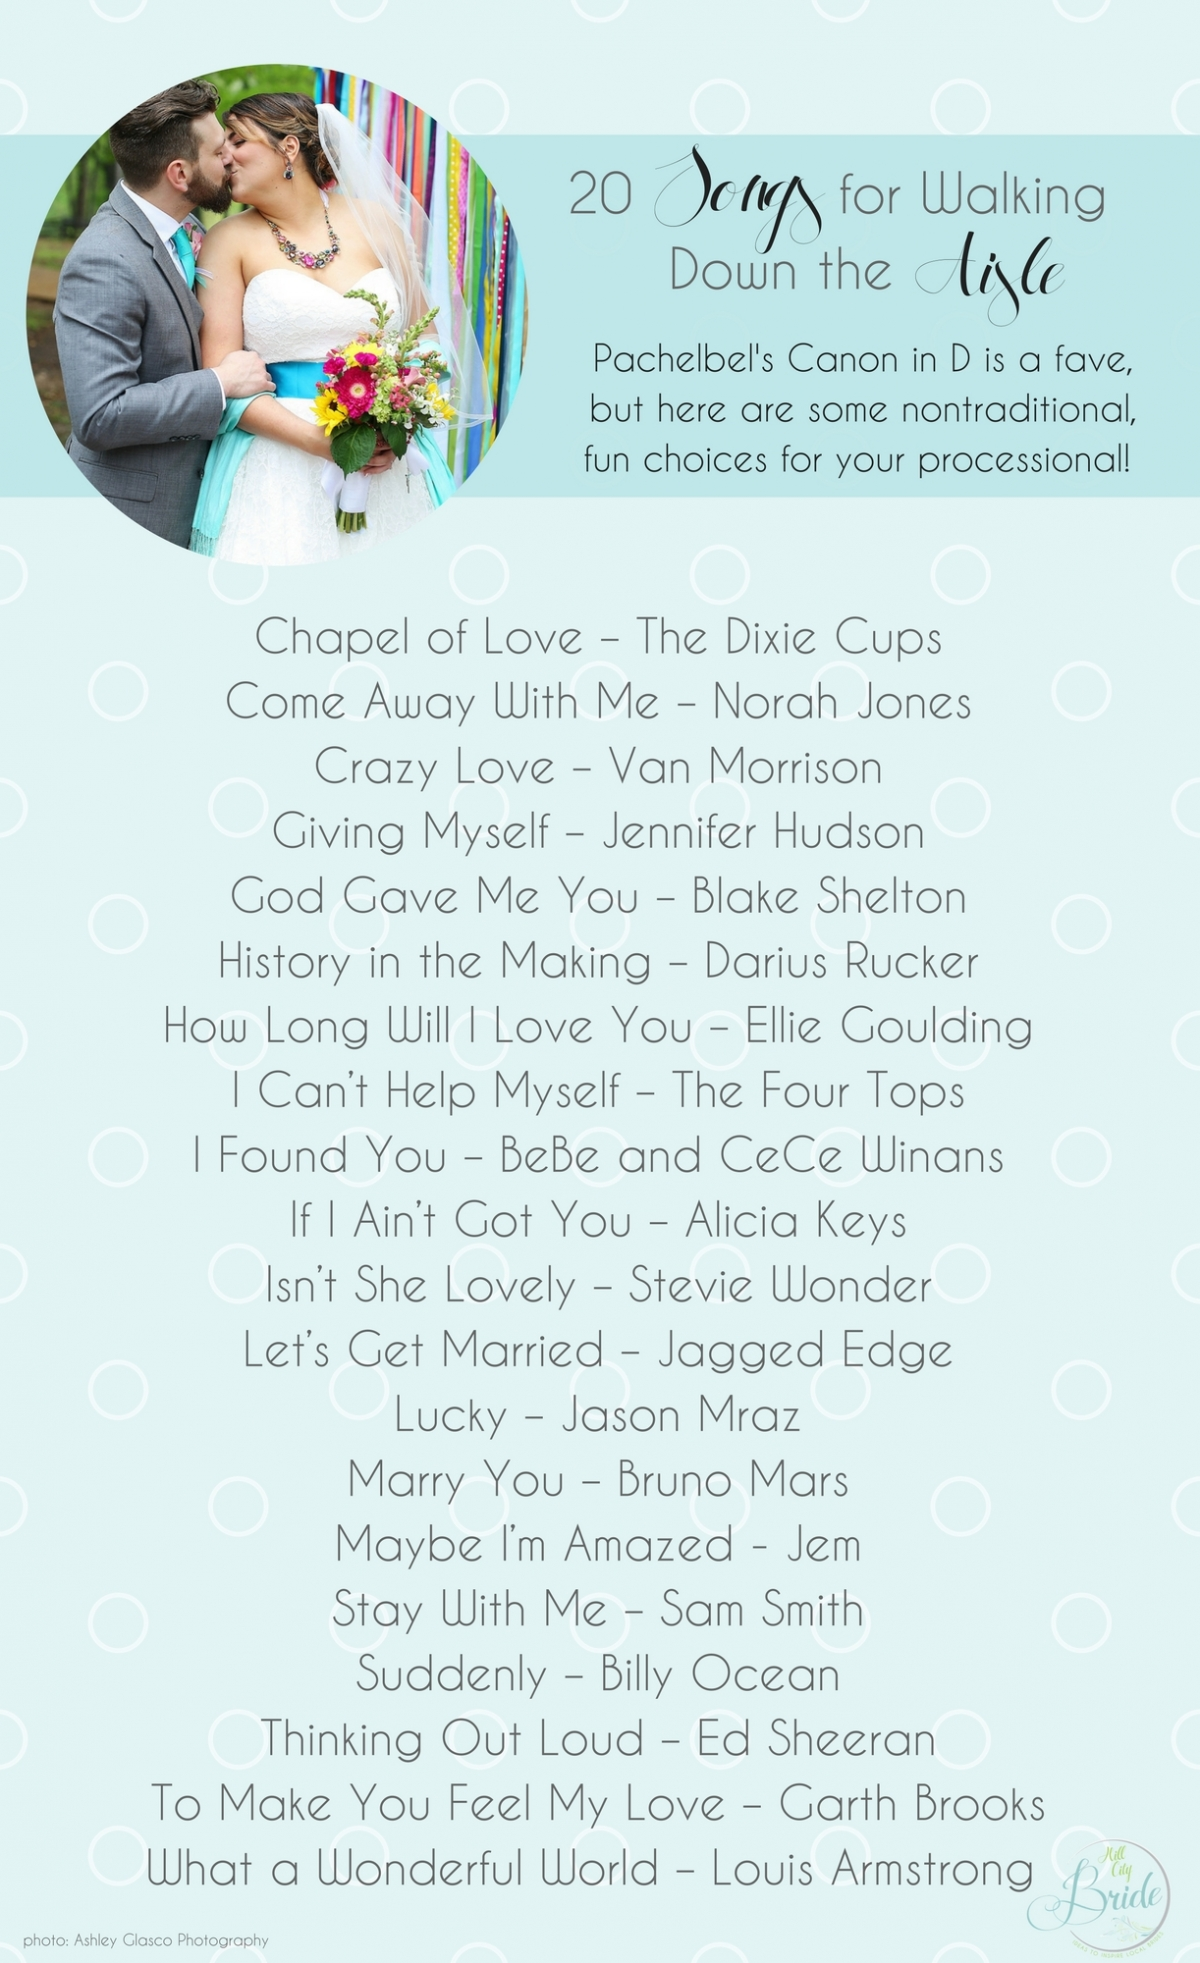 Wedding Songs To Walk Down The Aisle Non Traditional